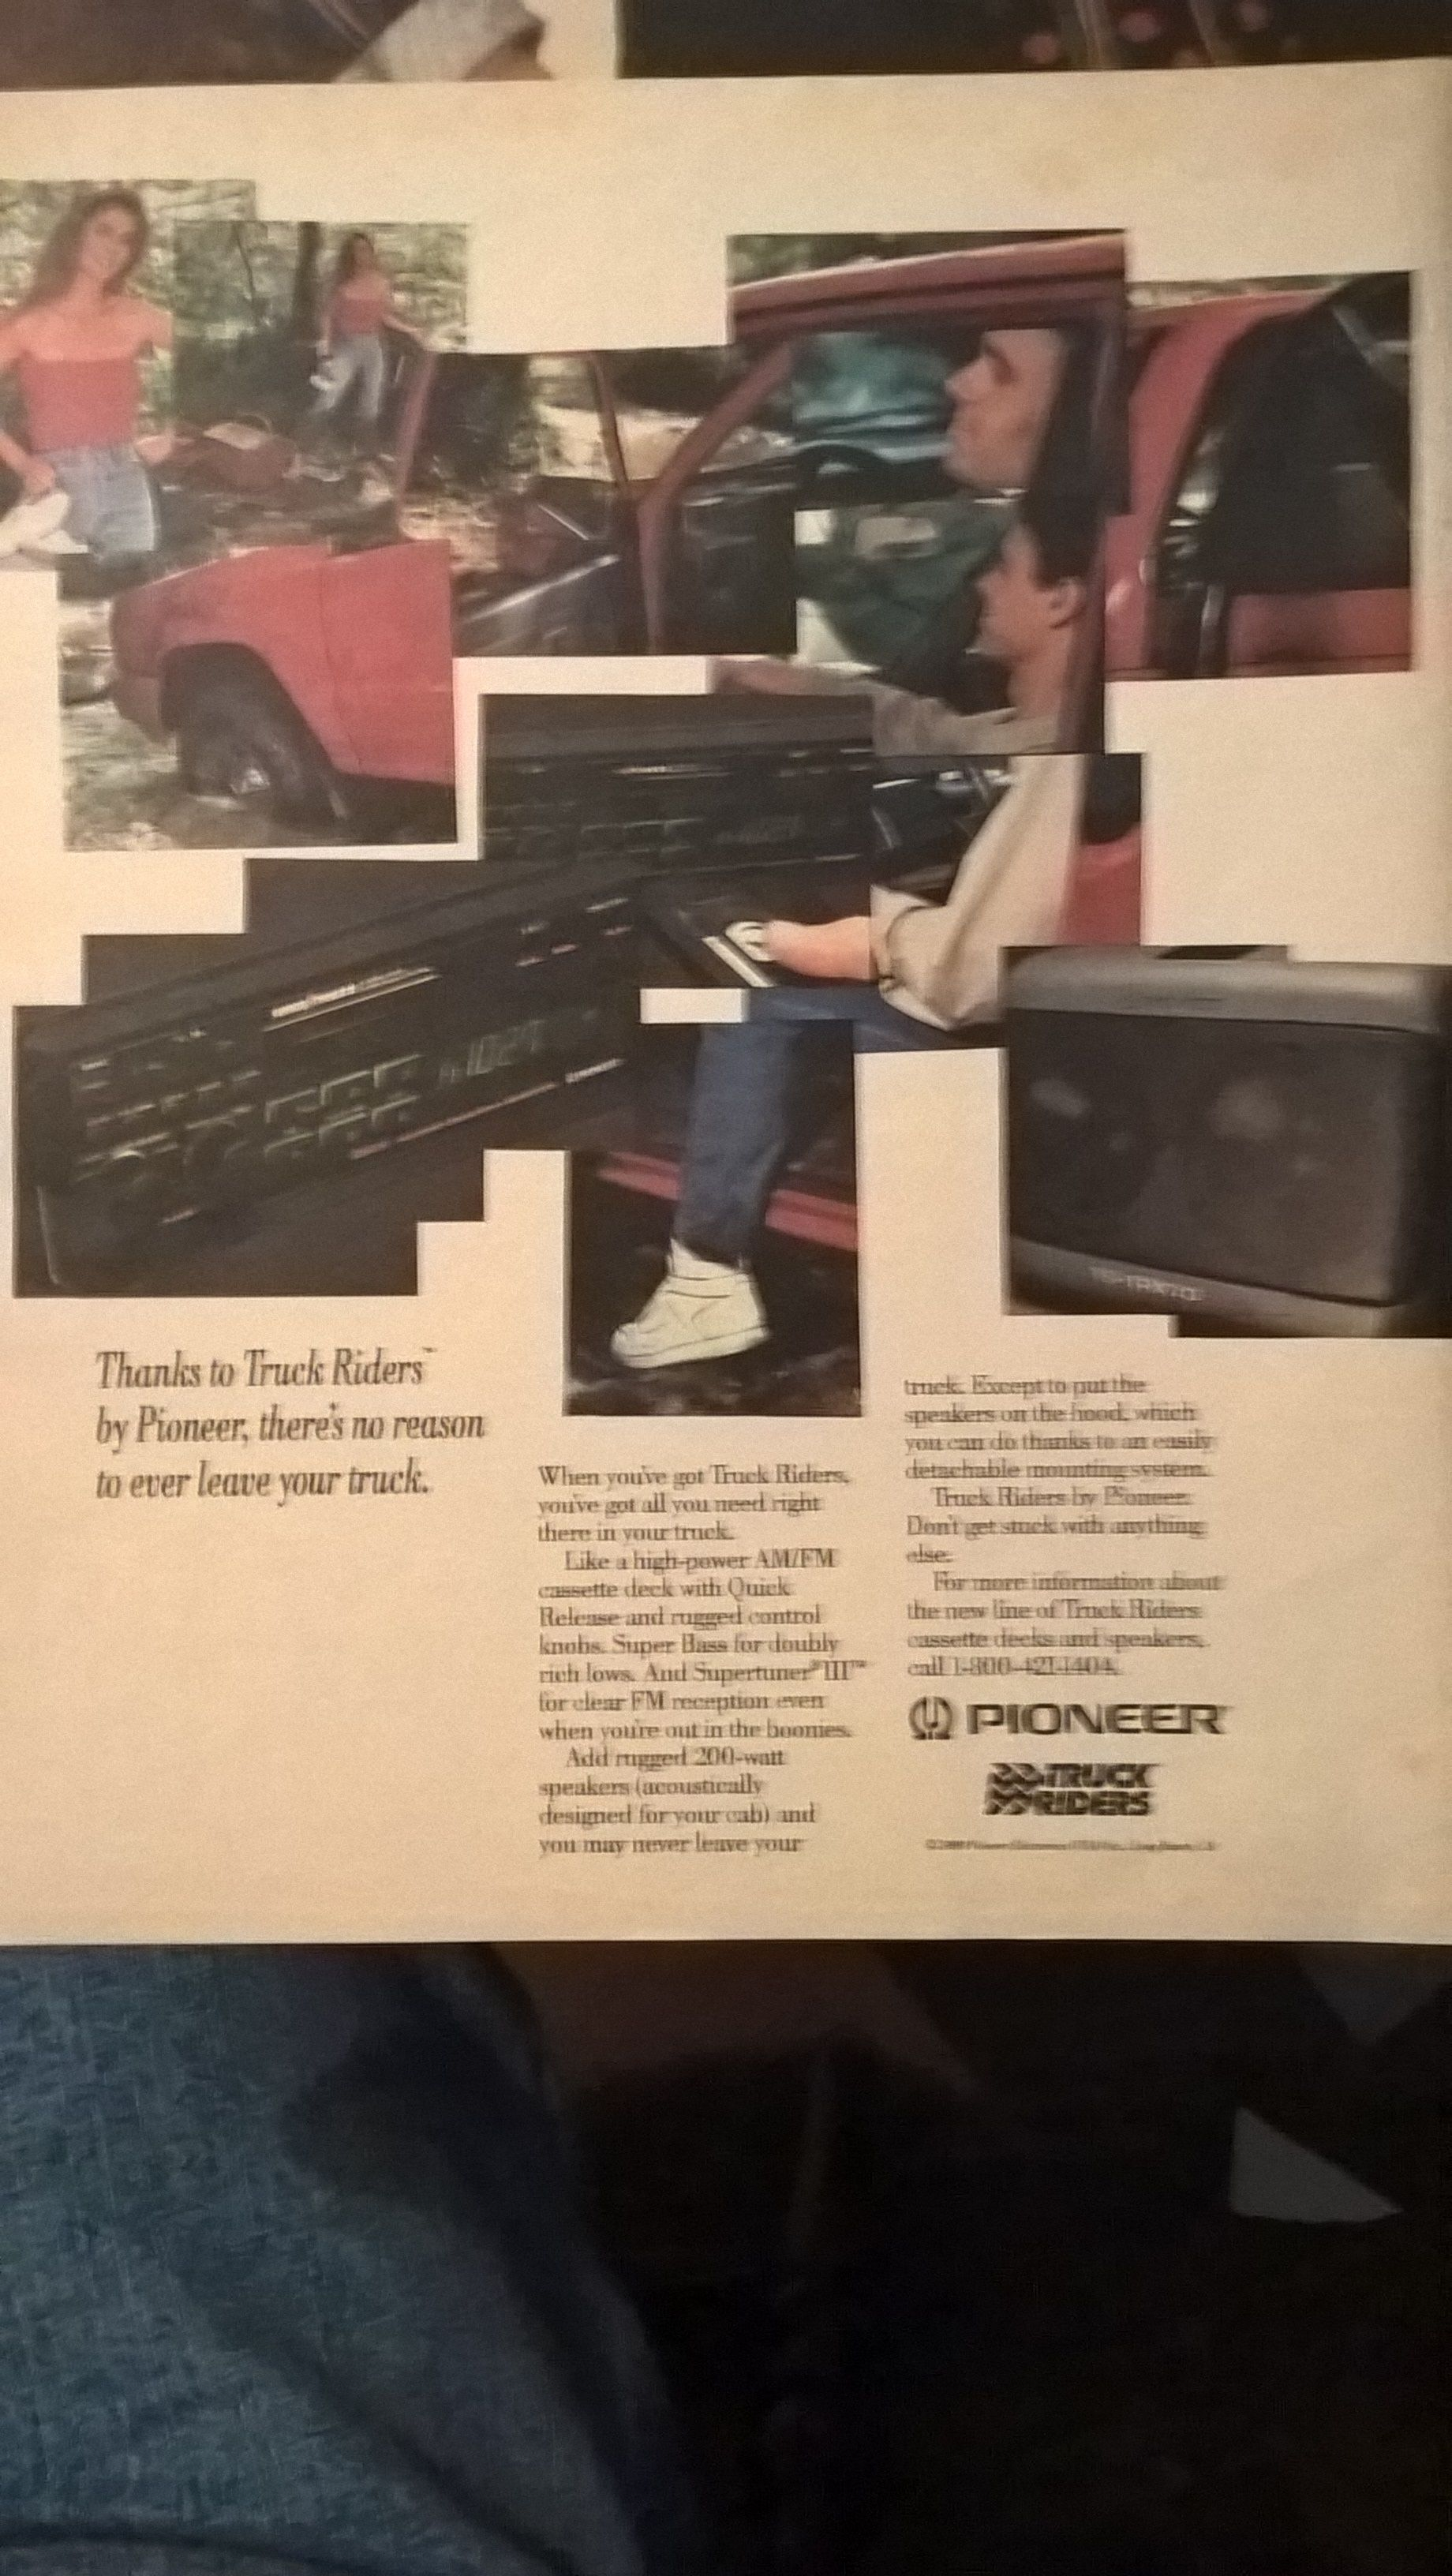 1989 Pioneer Truck Riders and Super Tuners III car stereos ad